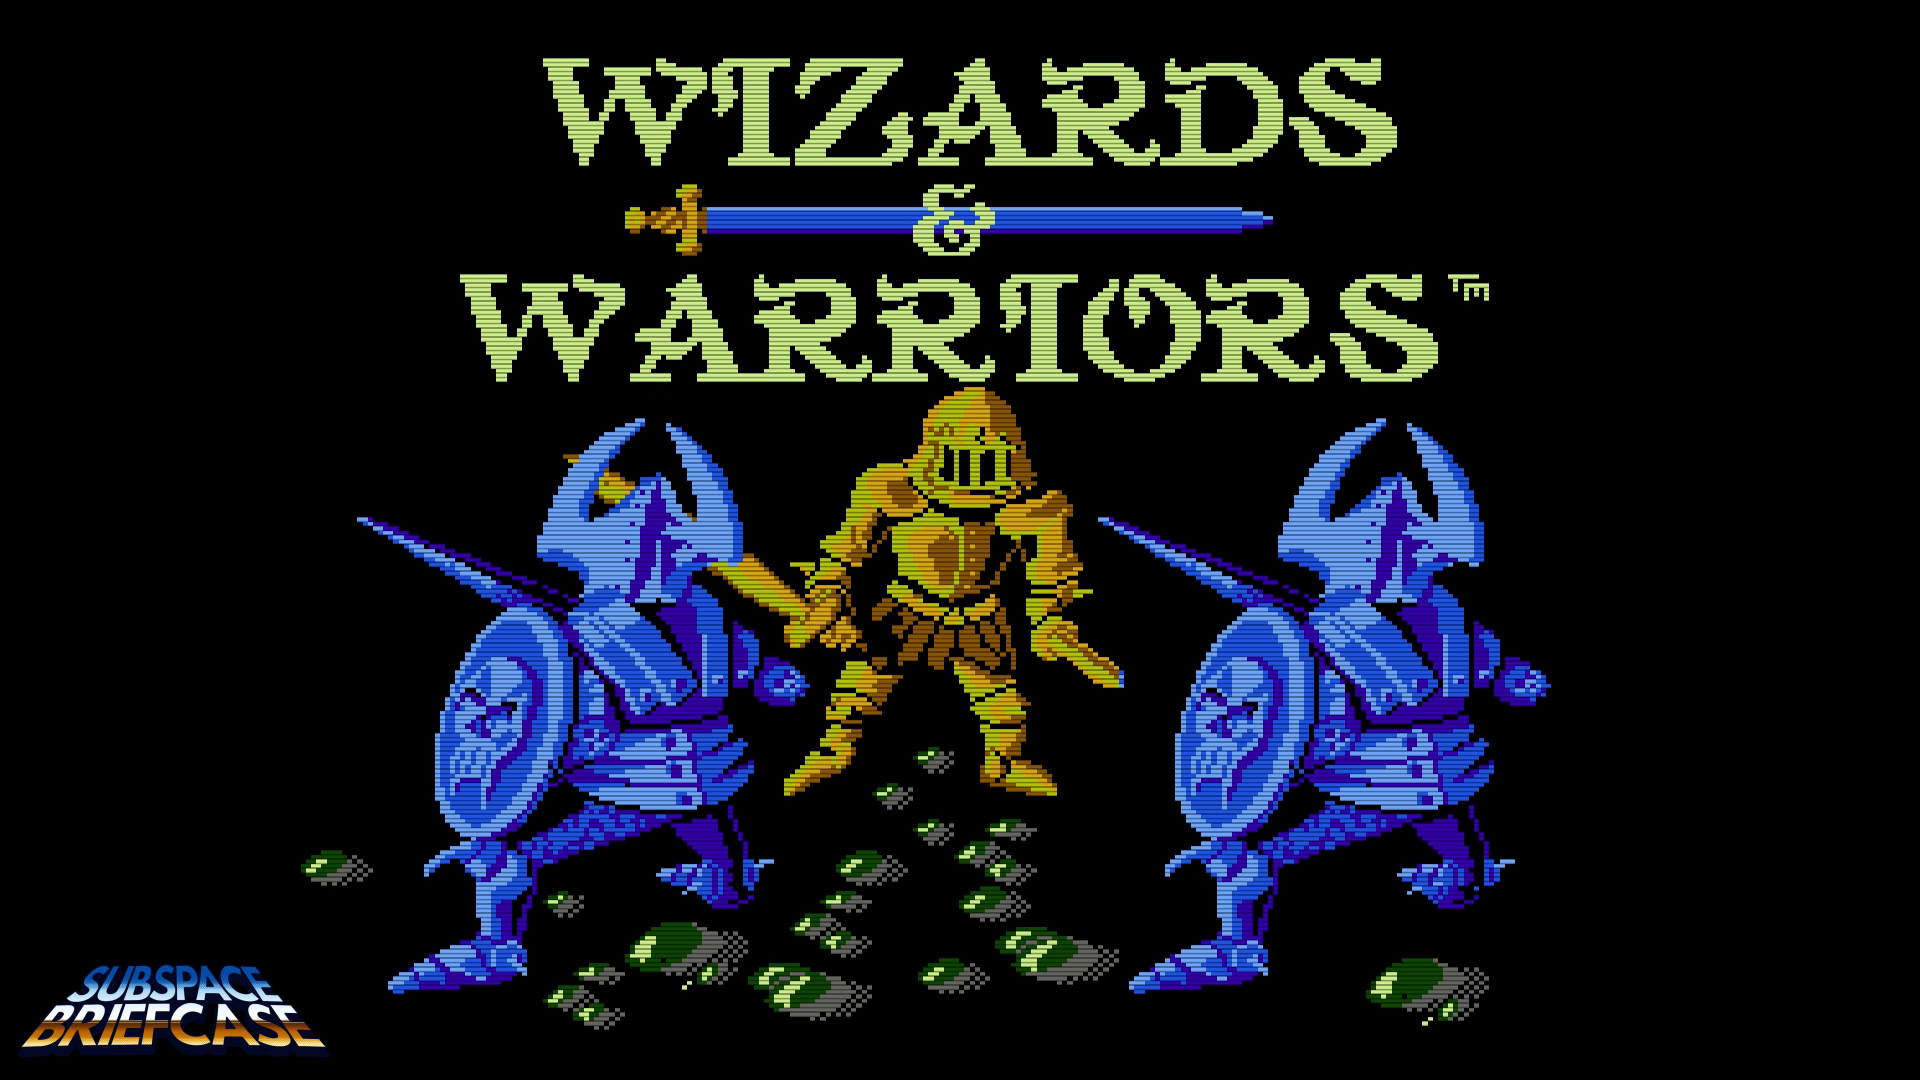 Wizards & Warriros Screenshot 2015-10-06 22-15-16